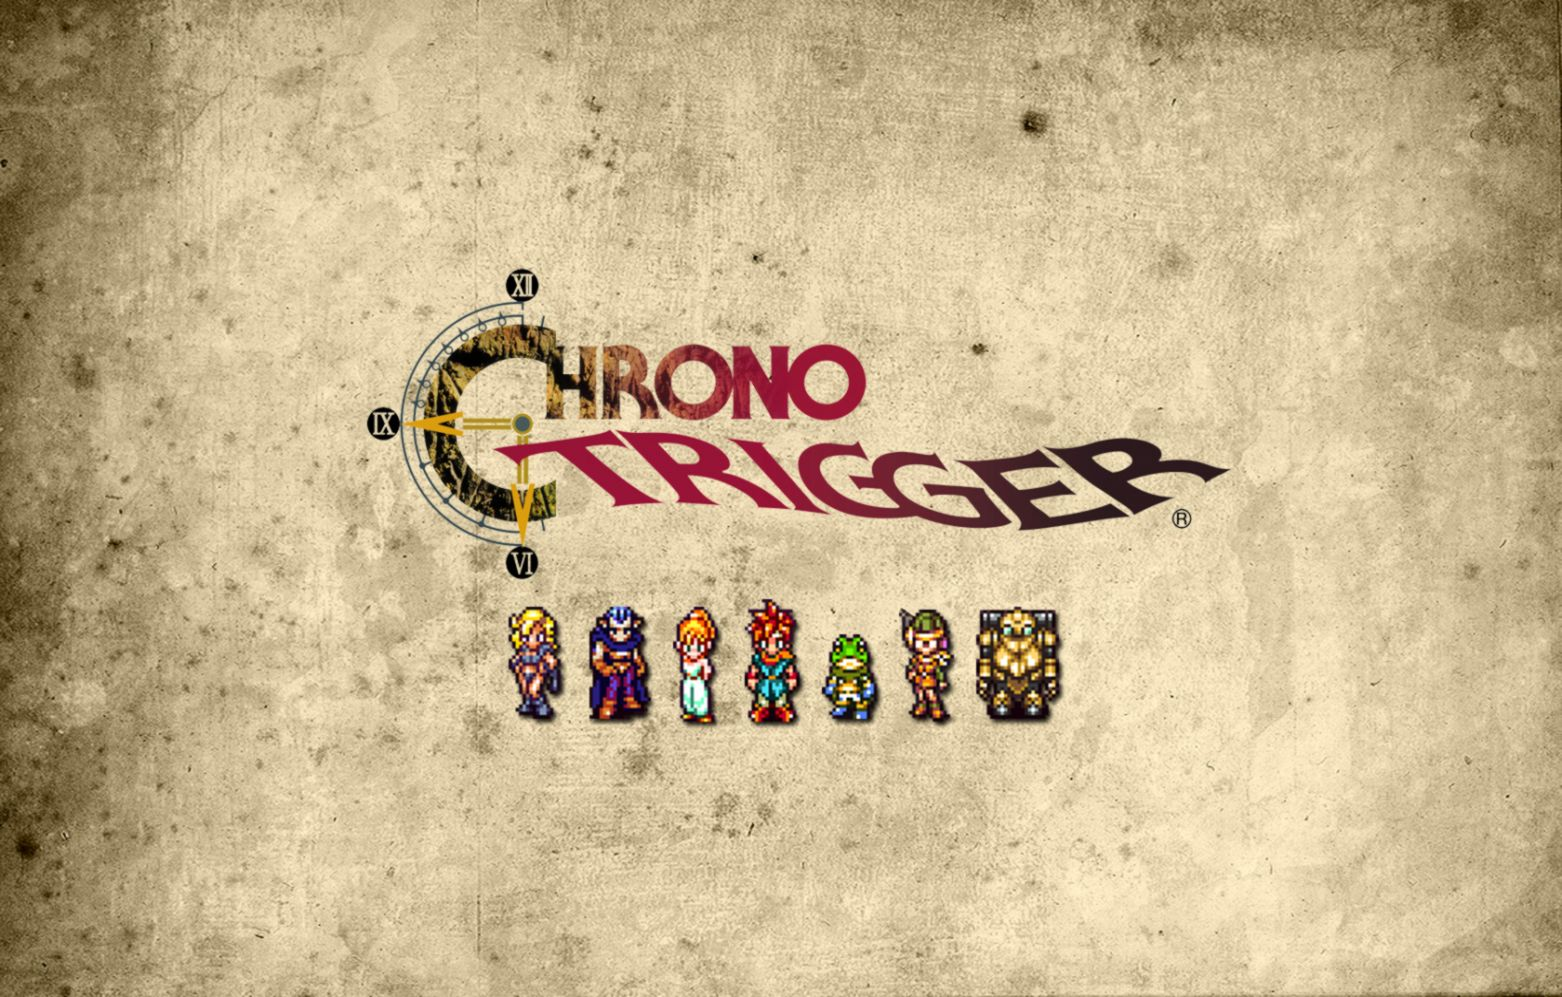 Chrono Trigger Wallpaper This Wallpapers